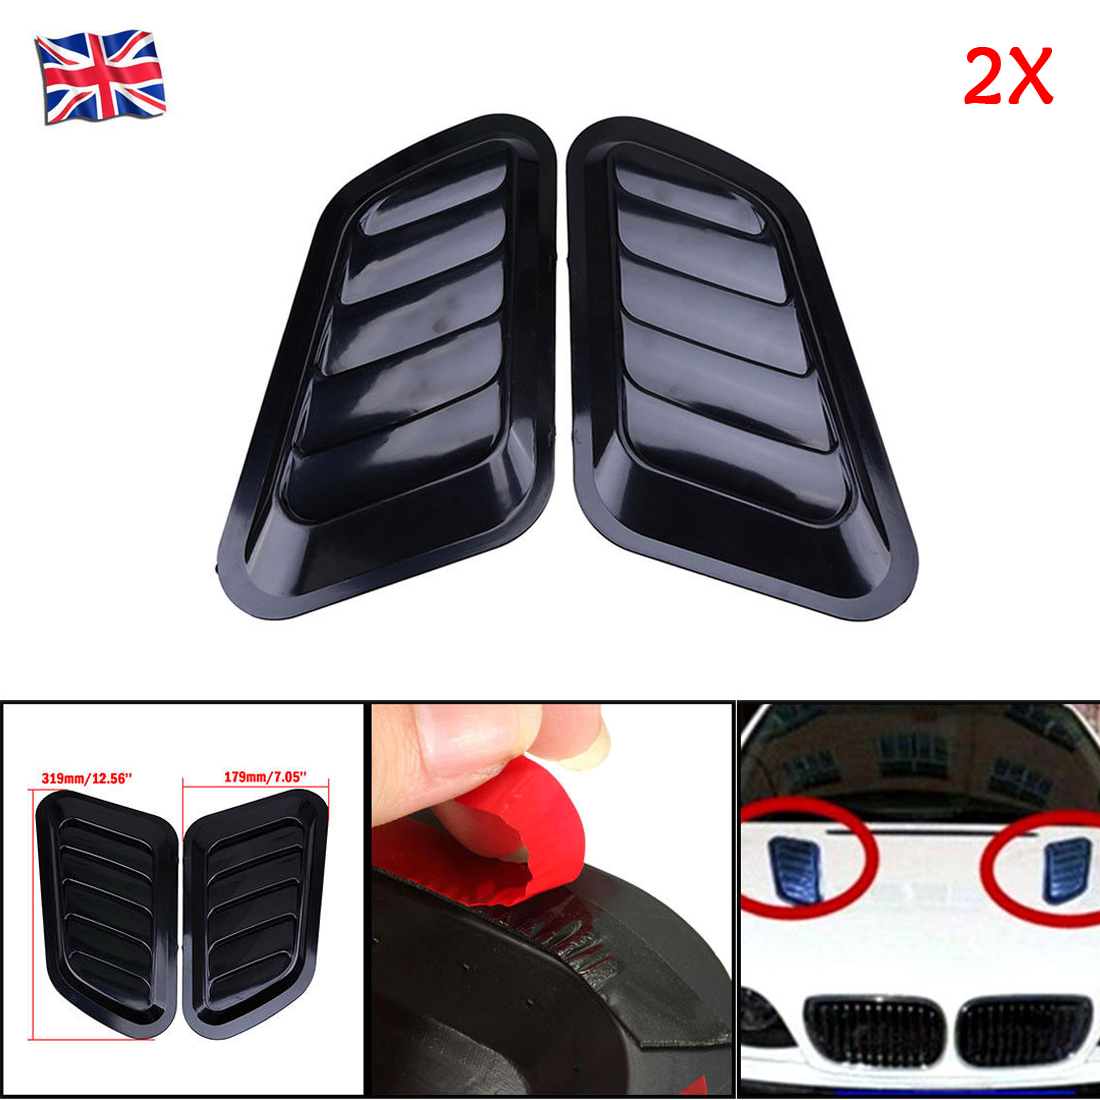 Black Air Flow Vent Hood Universal 2x Car Vents Decorative Air Flow Intake Hood Scoops DIY Style with Double-Sided Adhesive Tape